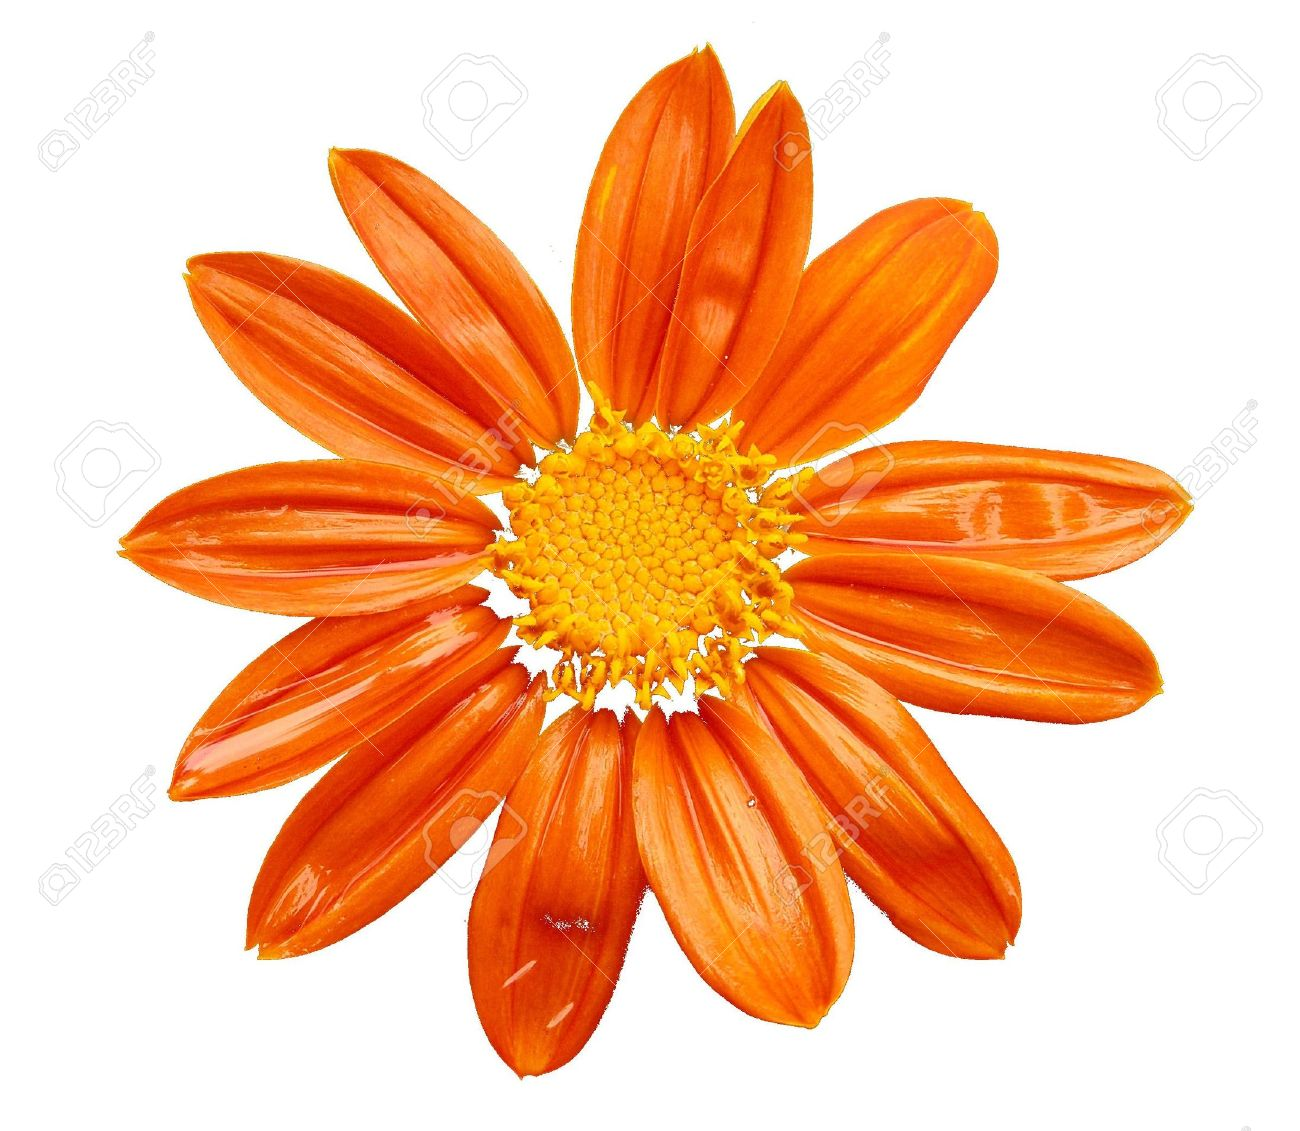 Orange Flower In White Background Stock Photo Picture And Royalty